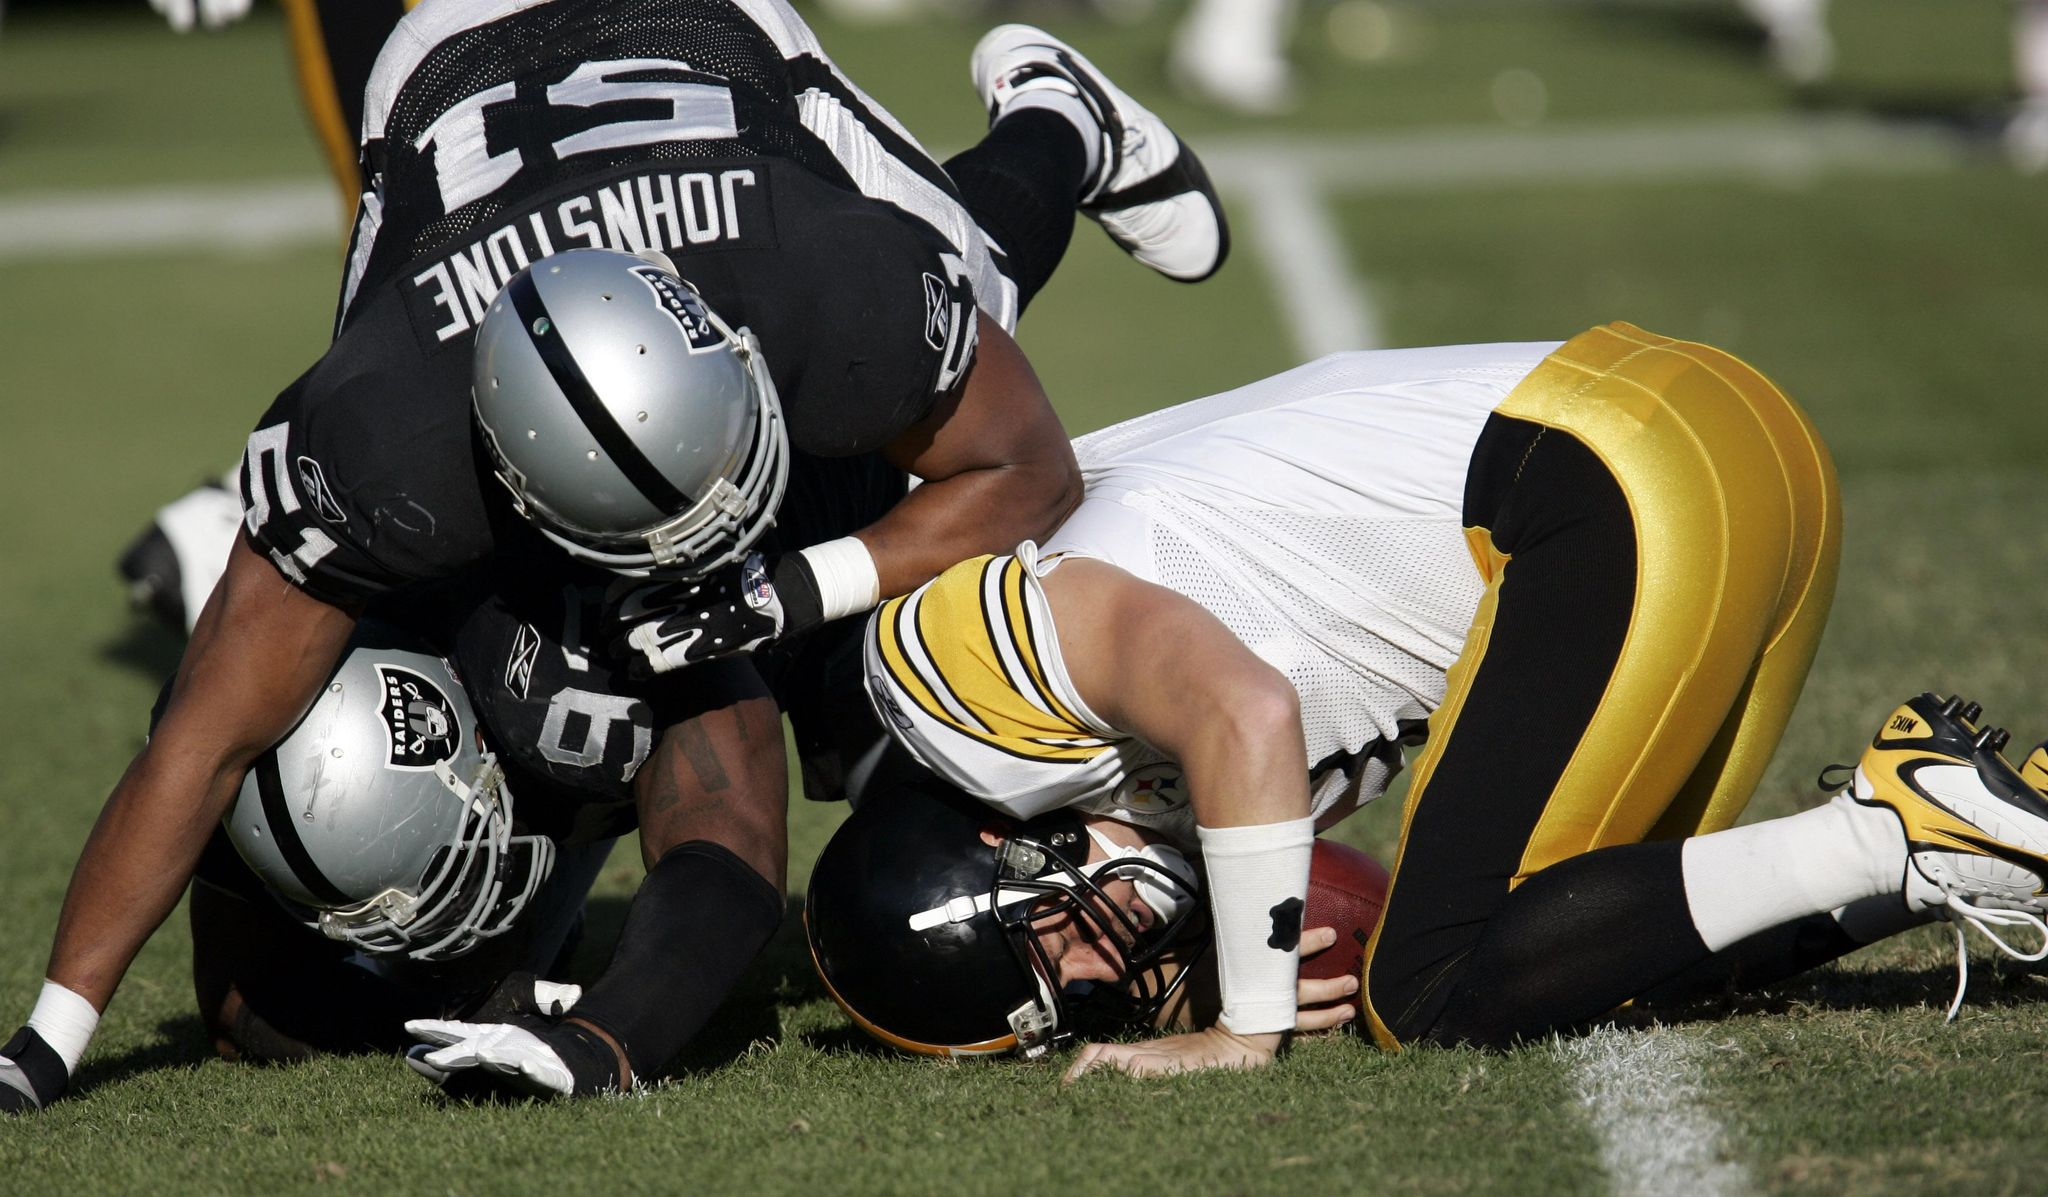 Steelers_raiders_preview_football_21692_s2048x1197